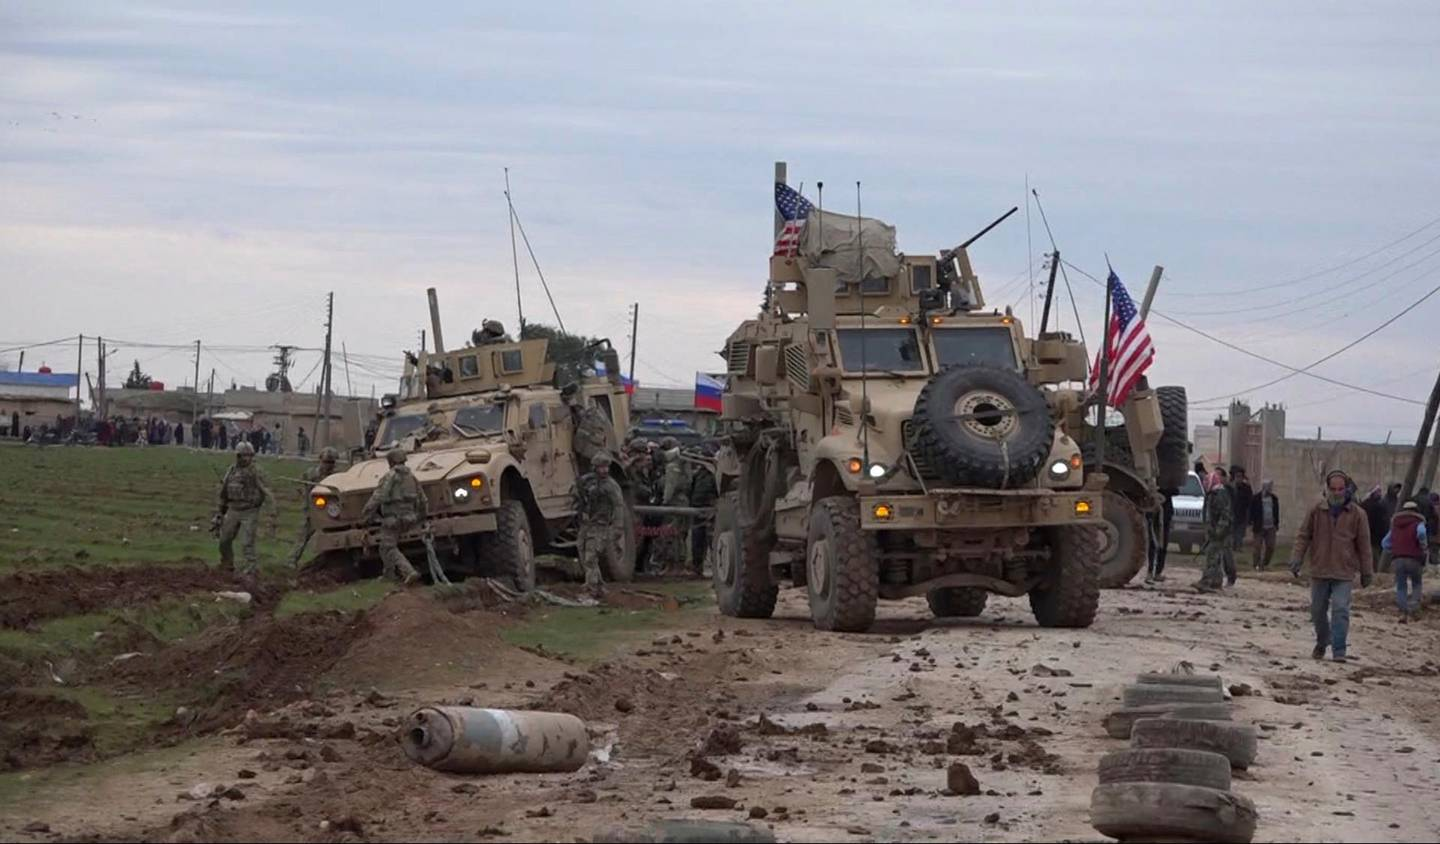 In this frame grab from video taken on Wednesday, Feb. 12, 2020, people and soldiers gather next to an American military convoy stuck in the village of Khirbet Ammu, east of Qamishli city, Syria, Wednesday, Feb. 12, 2020. The Syrian official news agency SANA, said Wednesday, that locals had gathered at an army checkpoint, pelting the U.S. convoy with stones and taking down a U.S. flag flying on a vehicle when troops fired with live ammunition and smoke bombs. (AP Photo)